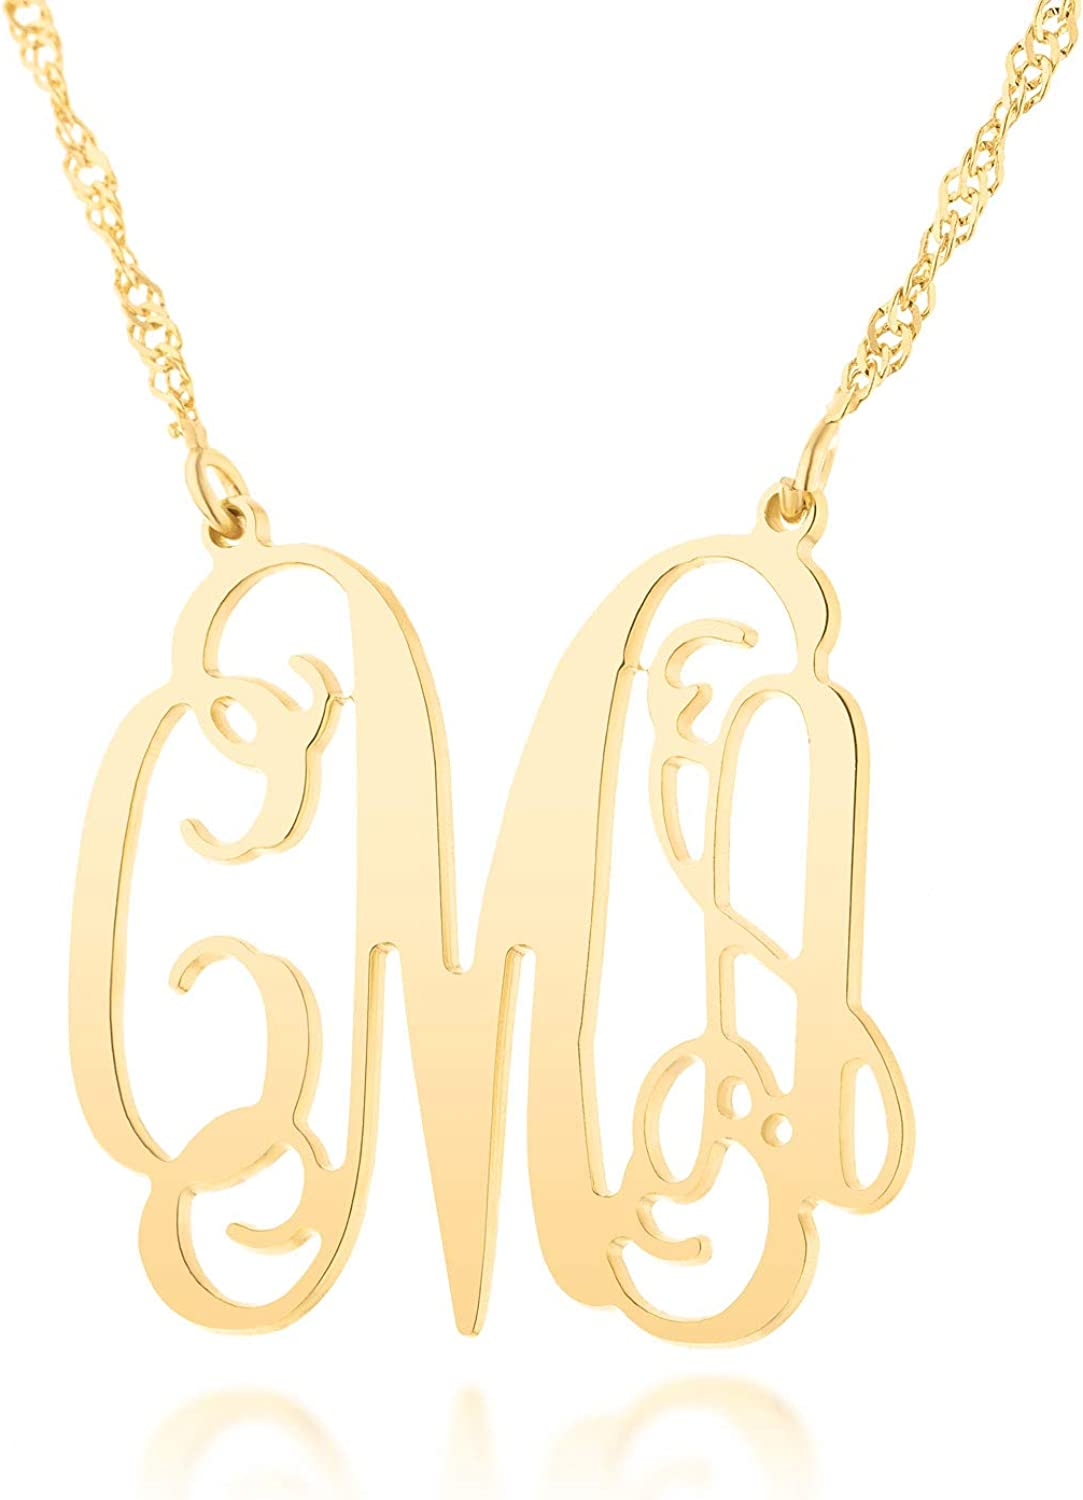 Personalized Name Necklace Gift for her Fresh Jewelry 18k Gold Plated Monogram Name Necklace